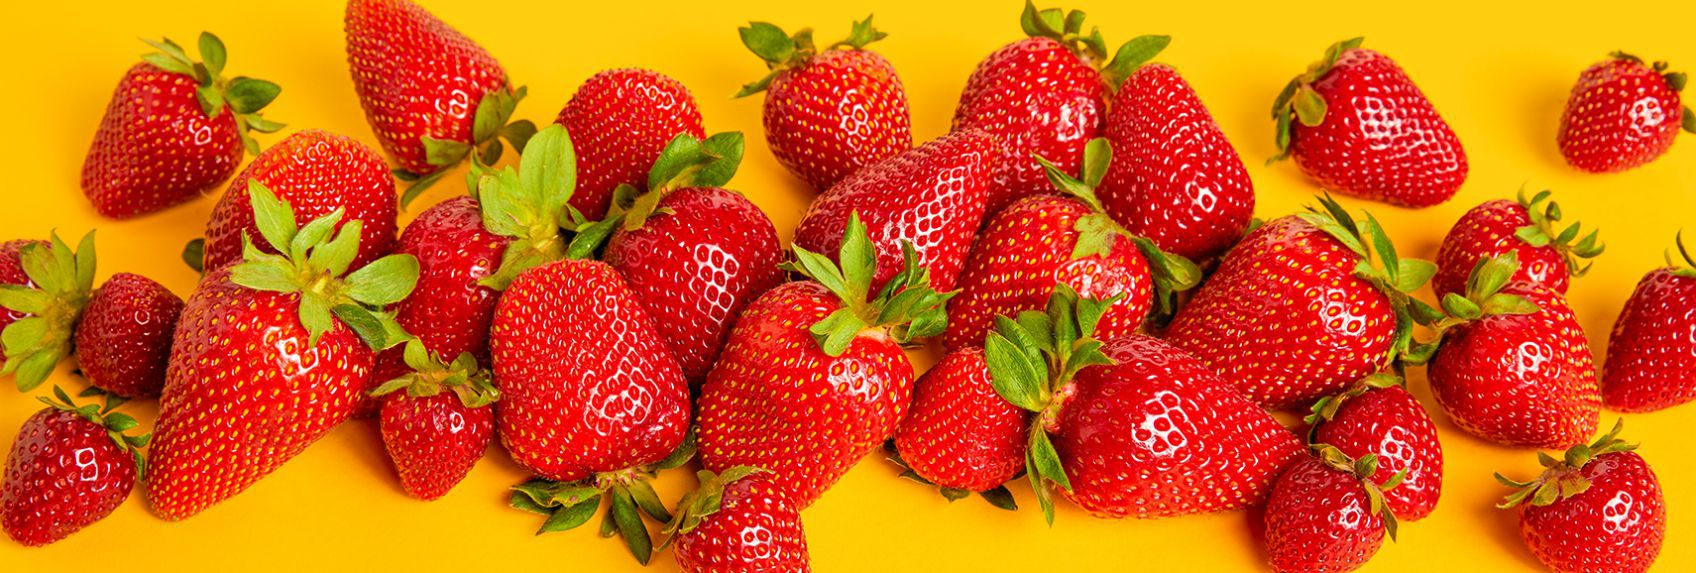 These Strawberries Will Change Your Life